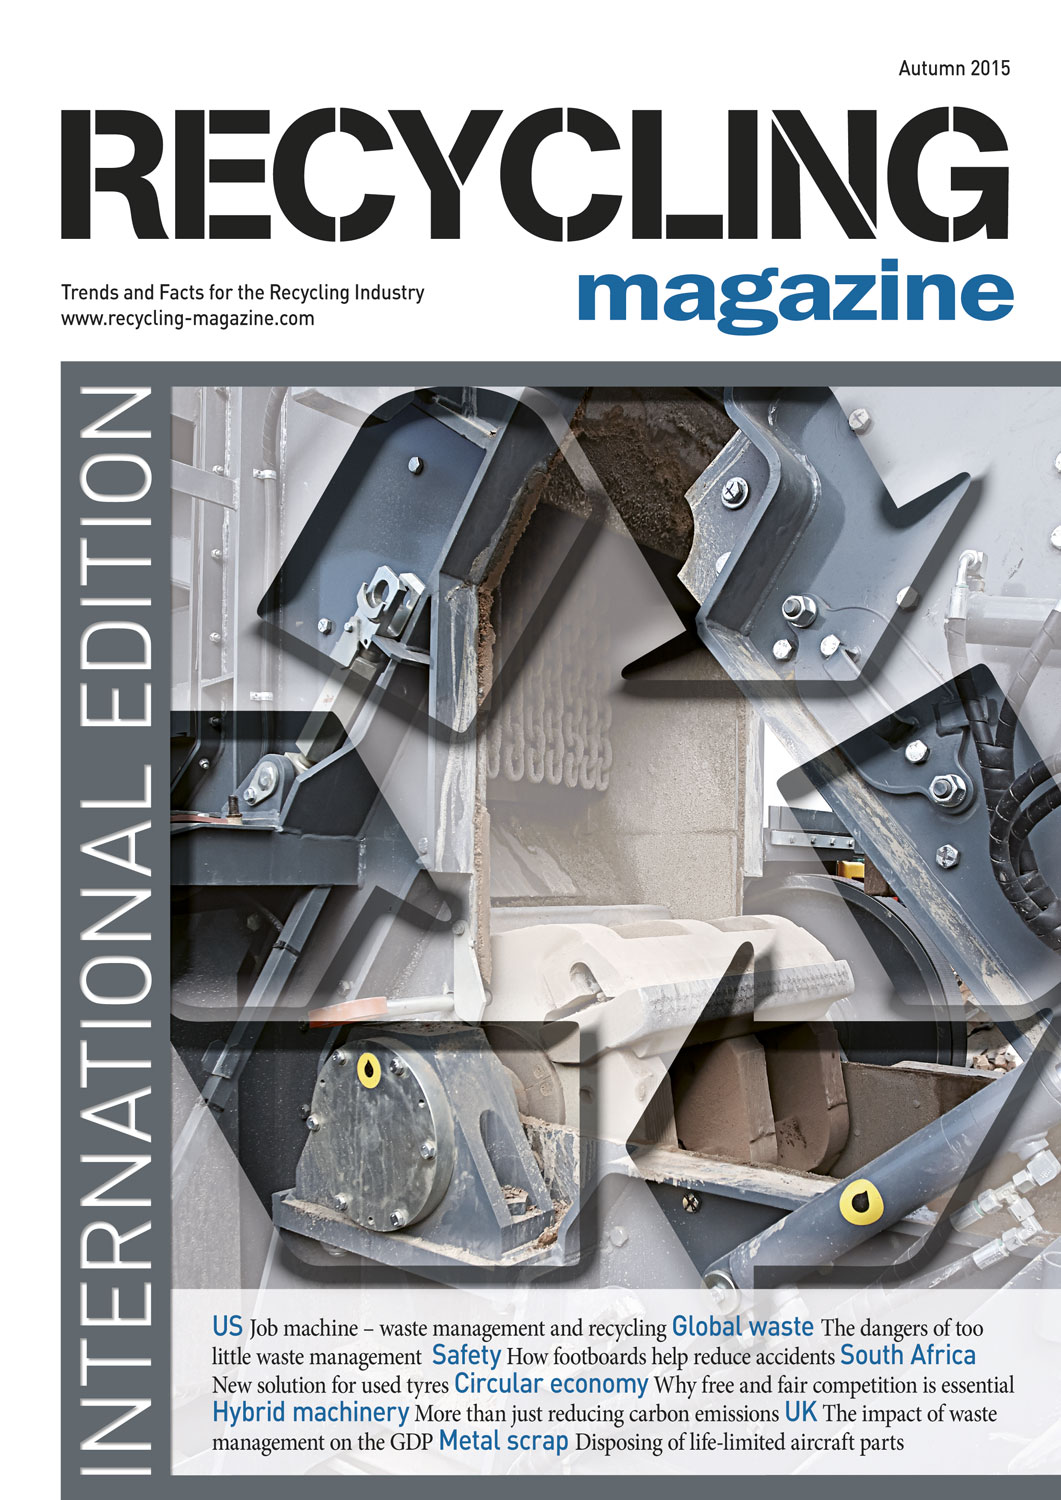 Recycling magazine 08 2015 recycling magazine for How to recycle old magazines